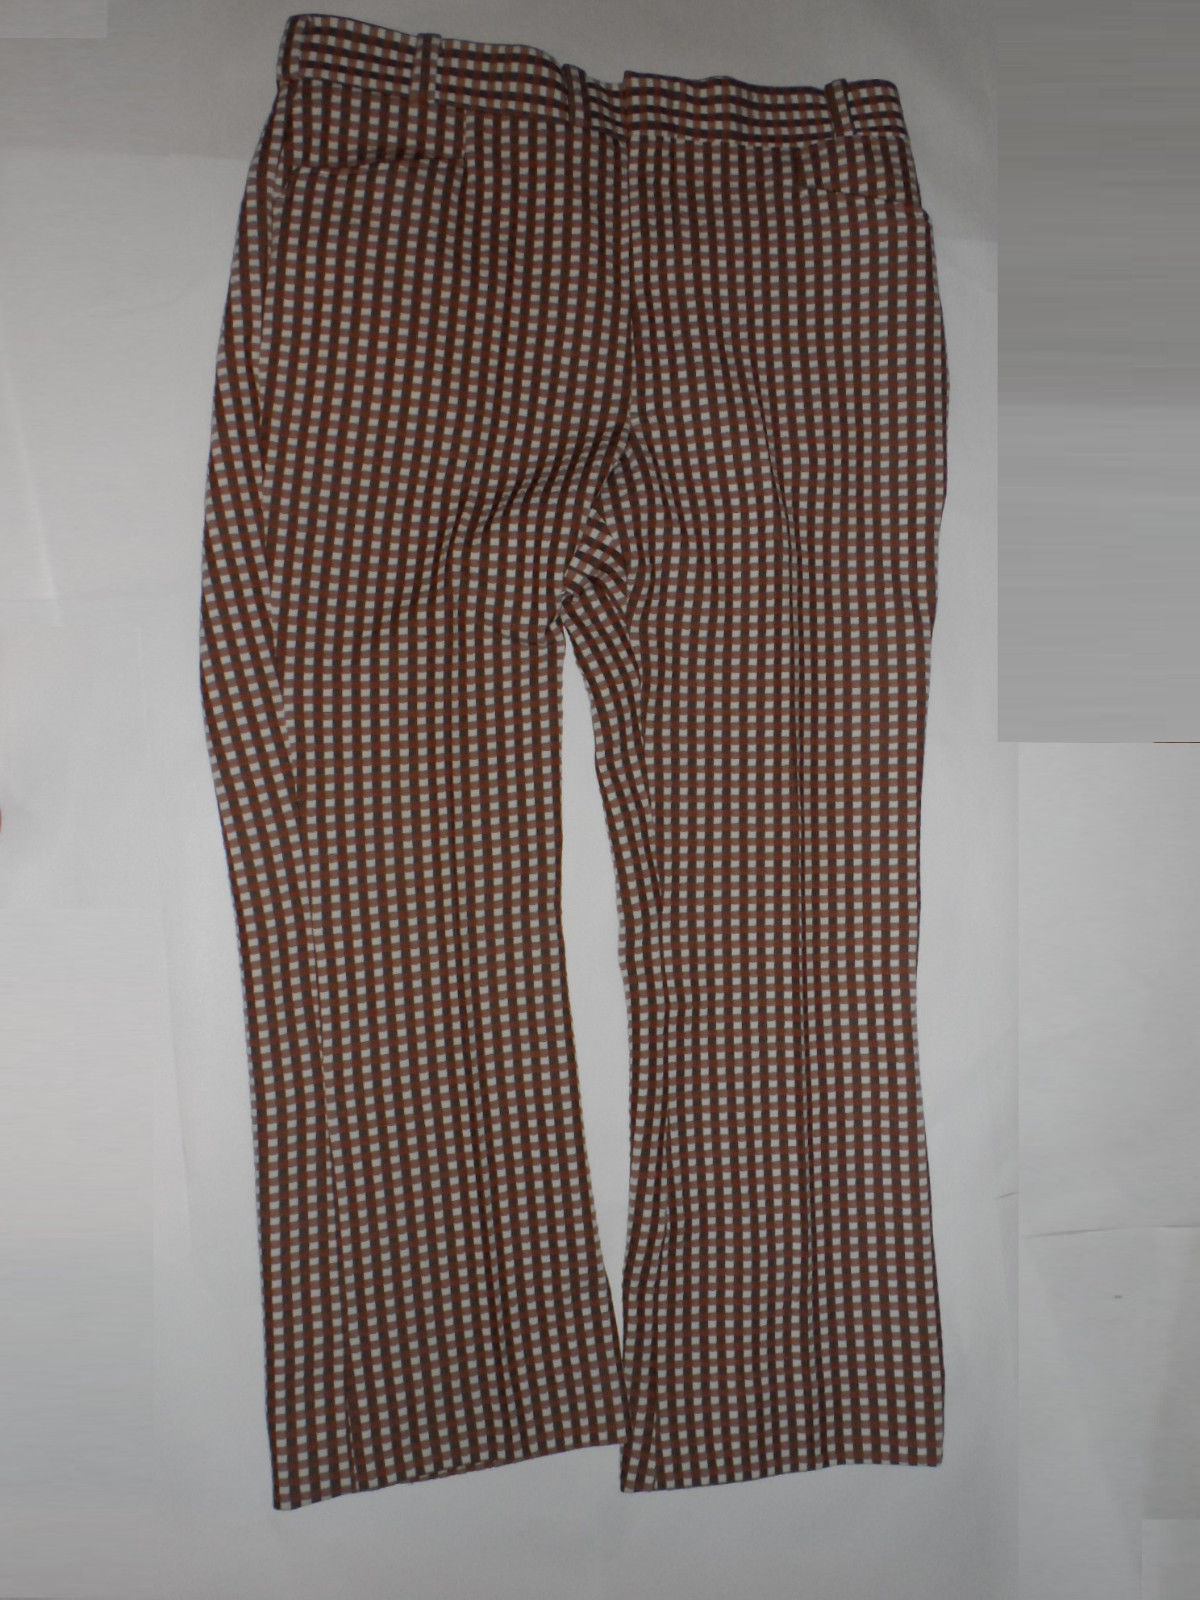 Vintage Mens S Checkered Golf Pants